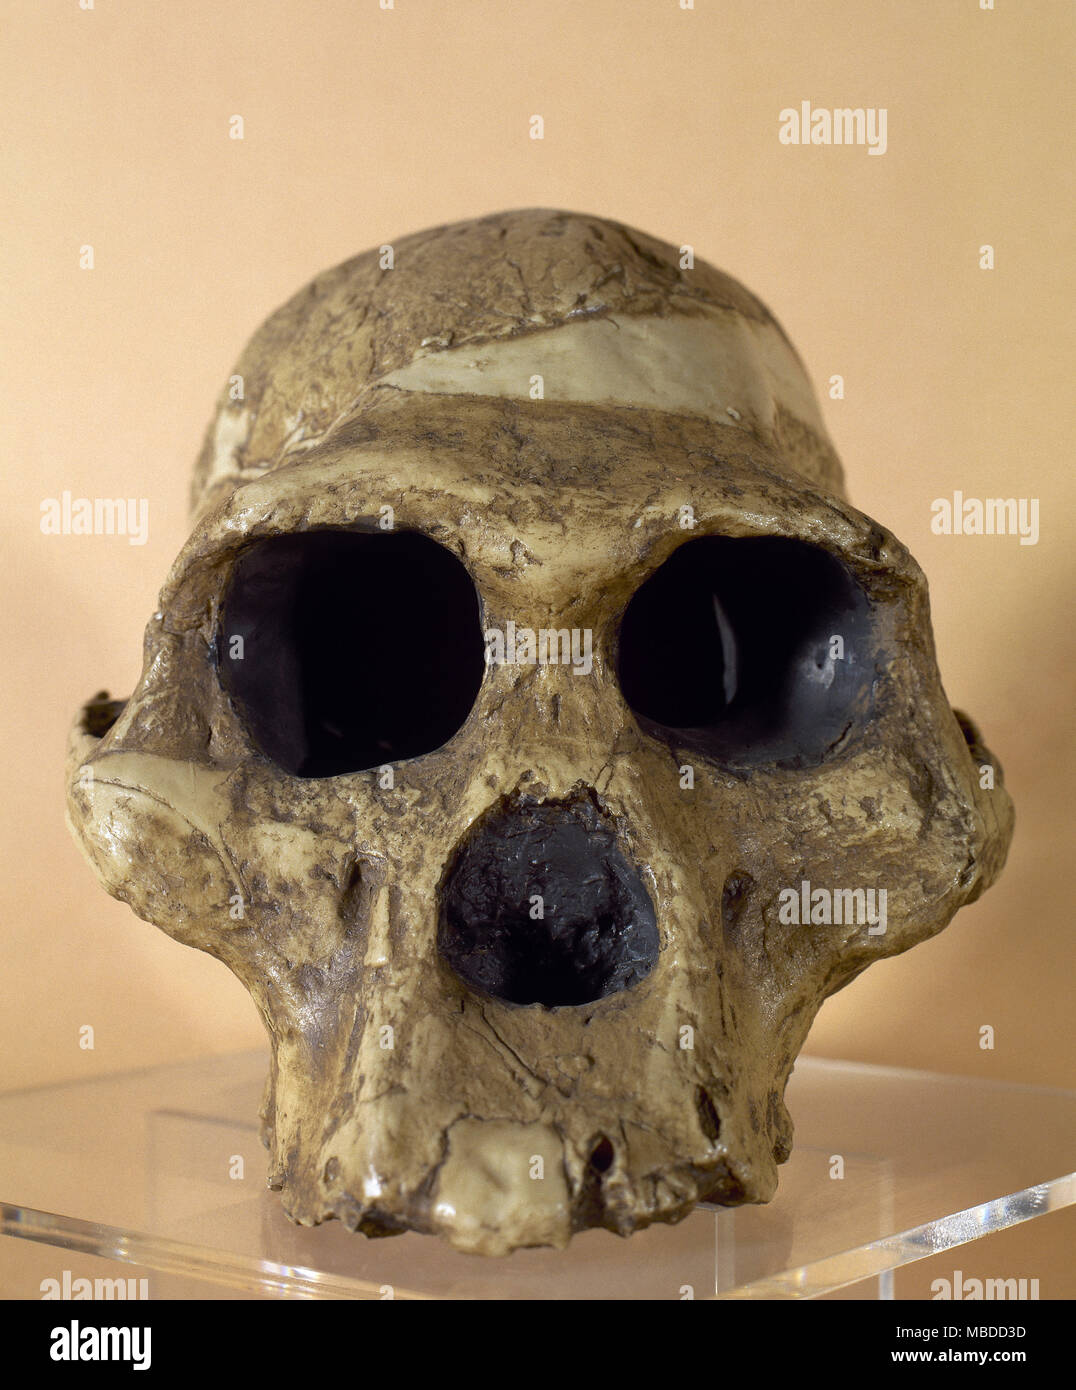 Mrs. Ples. Reproduction of a skull of an Australophitecus africanus (2.15 million years old). Found in Sterkfontein, South Africa. Archaeological Museum of  Catalonia, Barcelona, Spain. - Stock Image